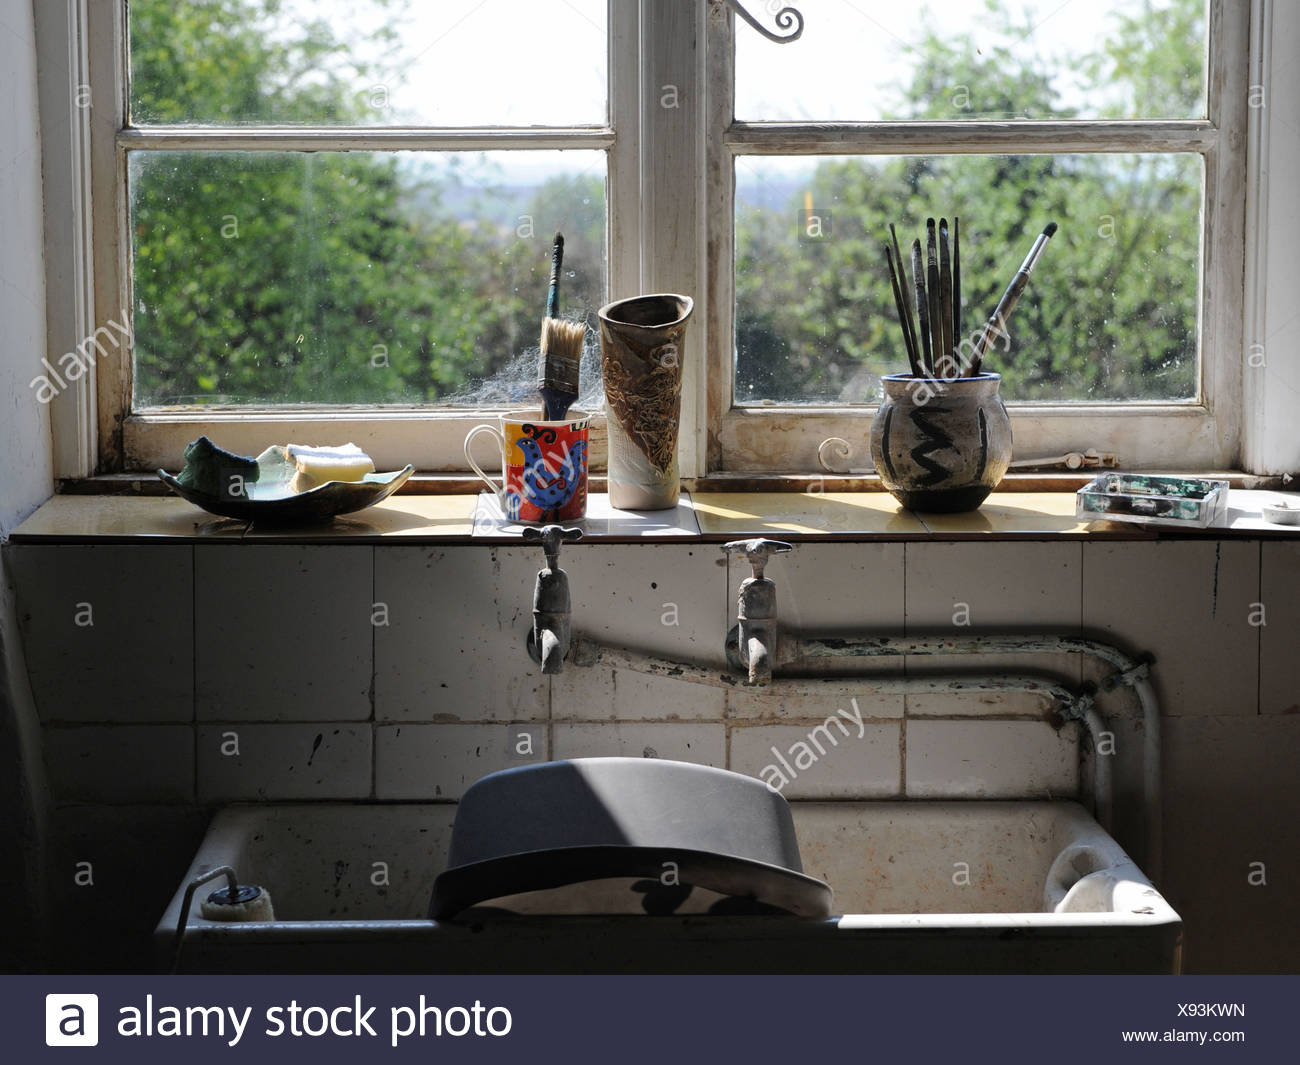 The sink area of a struggling artist - Stock Image